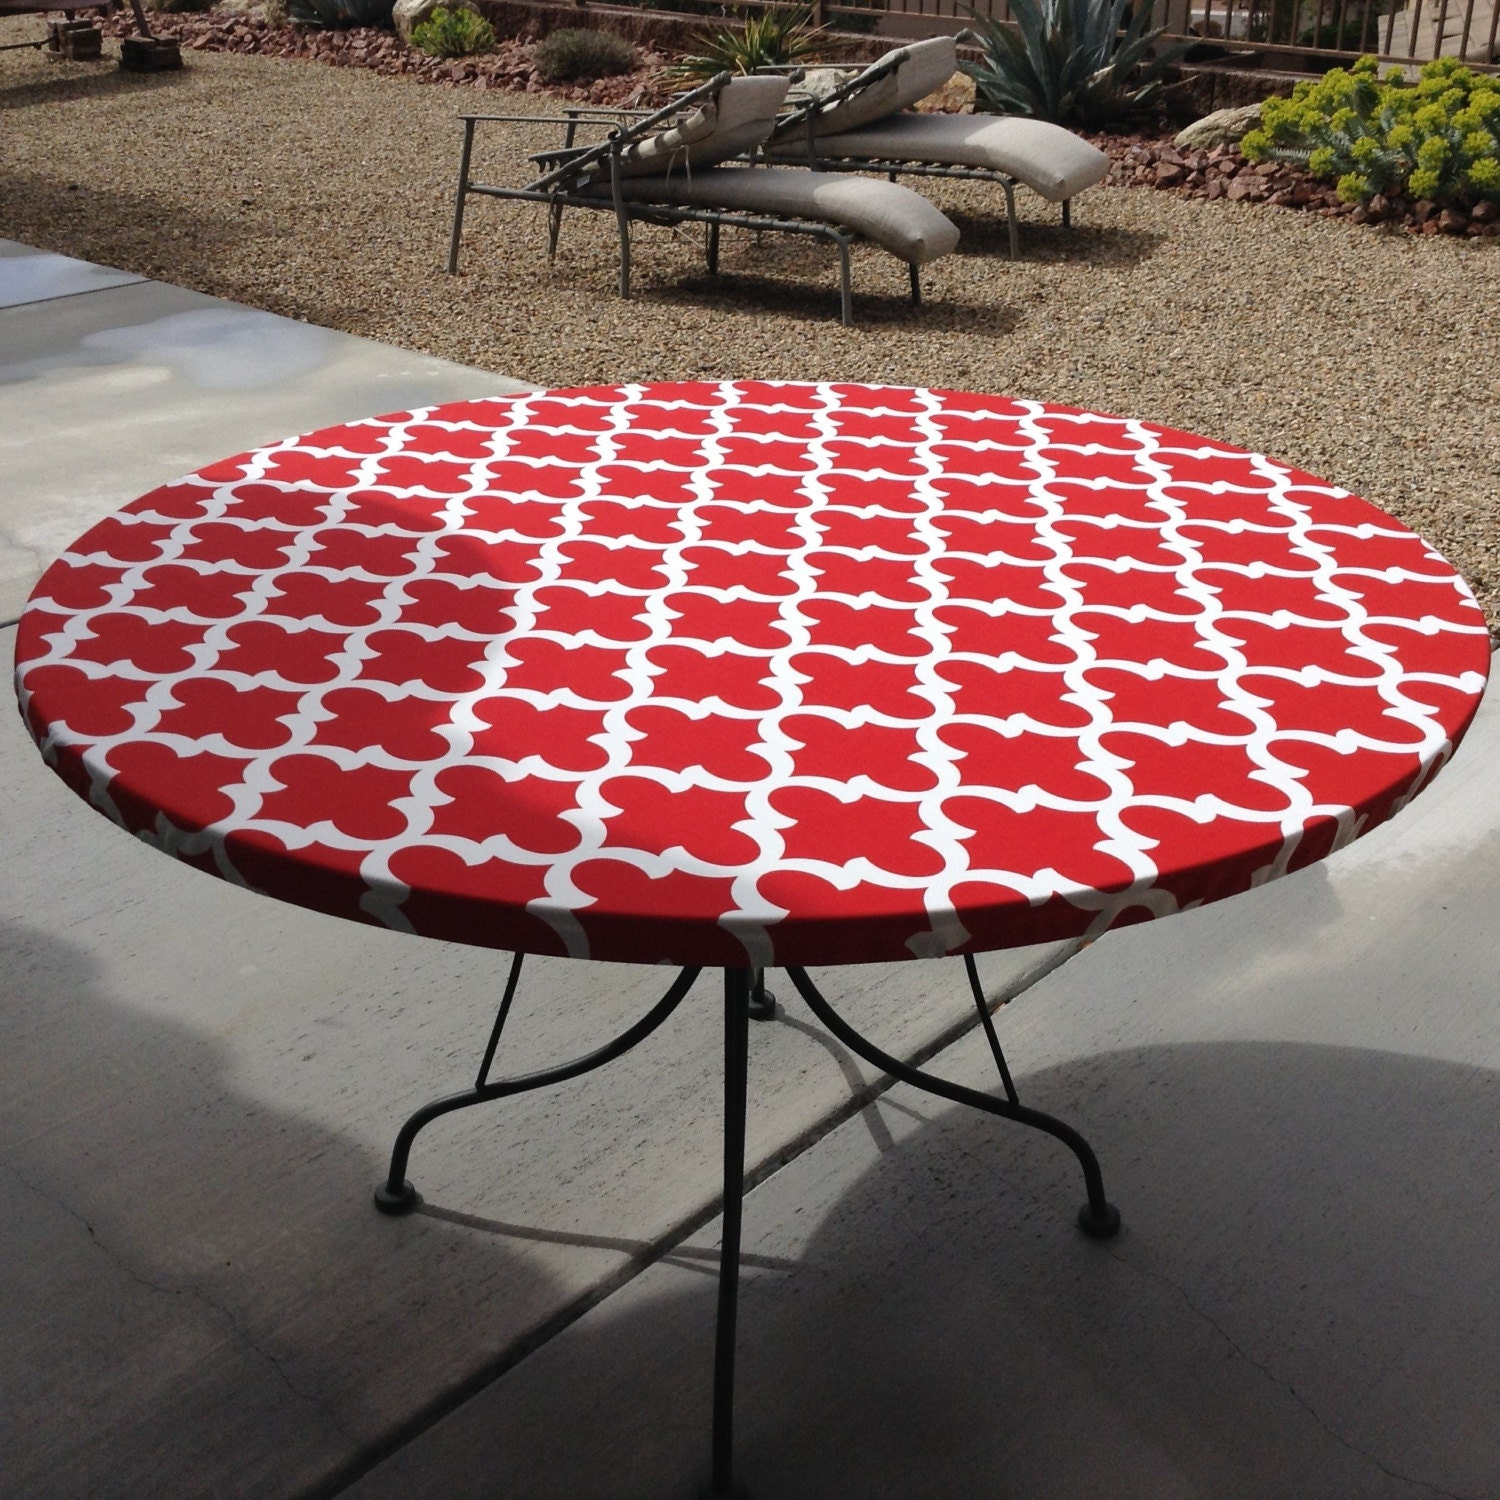 Round Outdoor Fitted Tablecloth. Soil and Stain Resistant ...